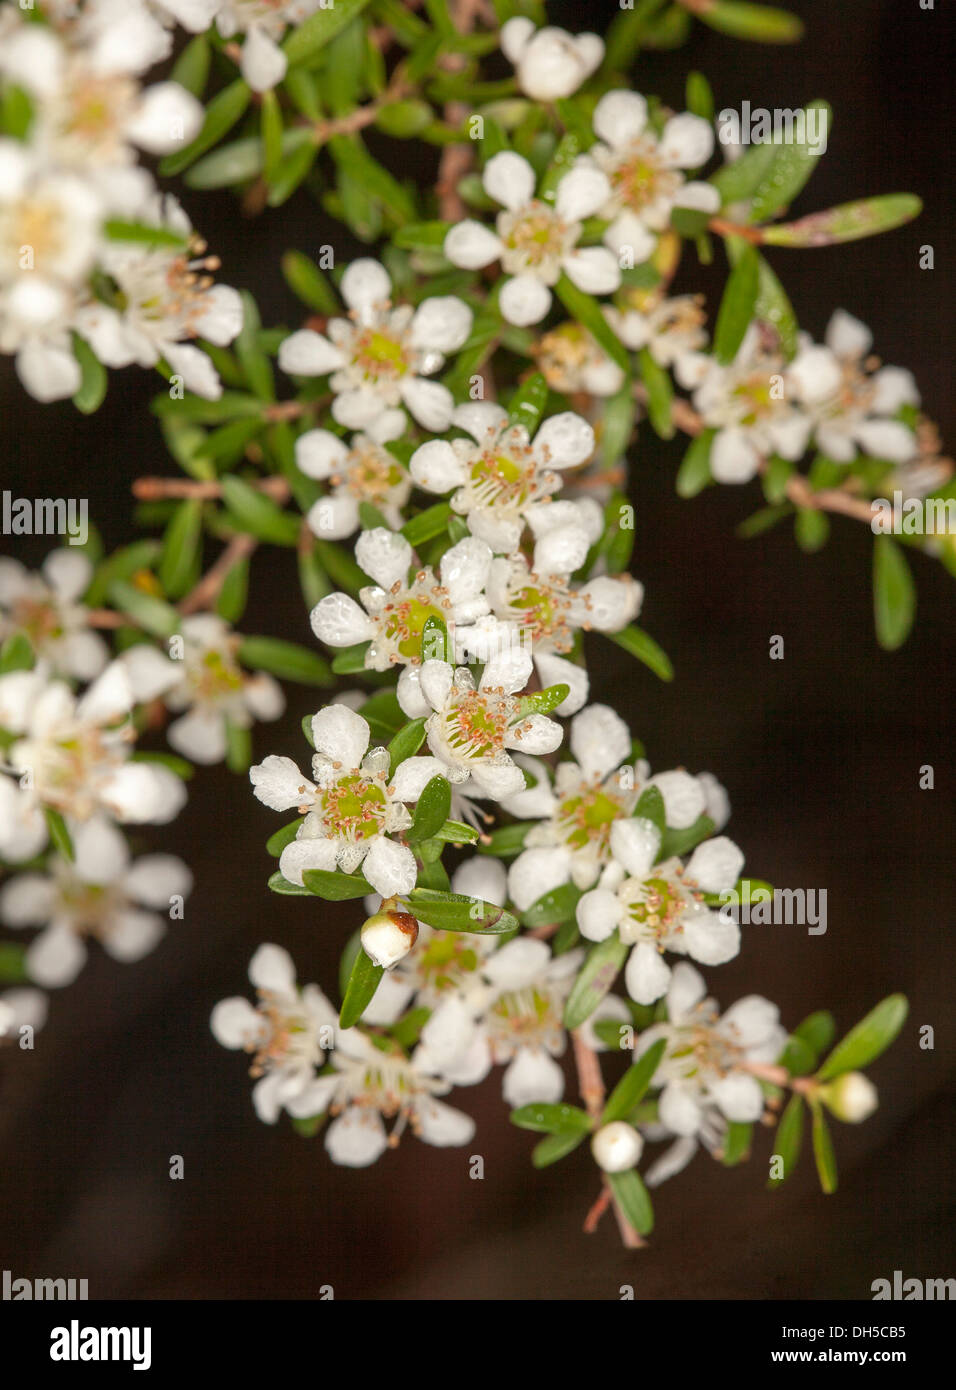 Cluster of white flowers and leaves of leptospermum liversidgei cluster of white flowers and leaves of leptospermum liversidgei olive tea tree australian wildflowers growing in a forest mightylinksfo